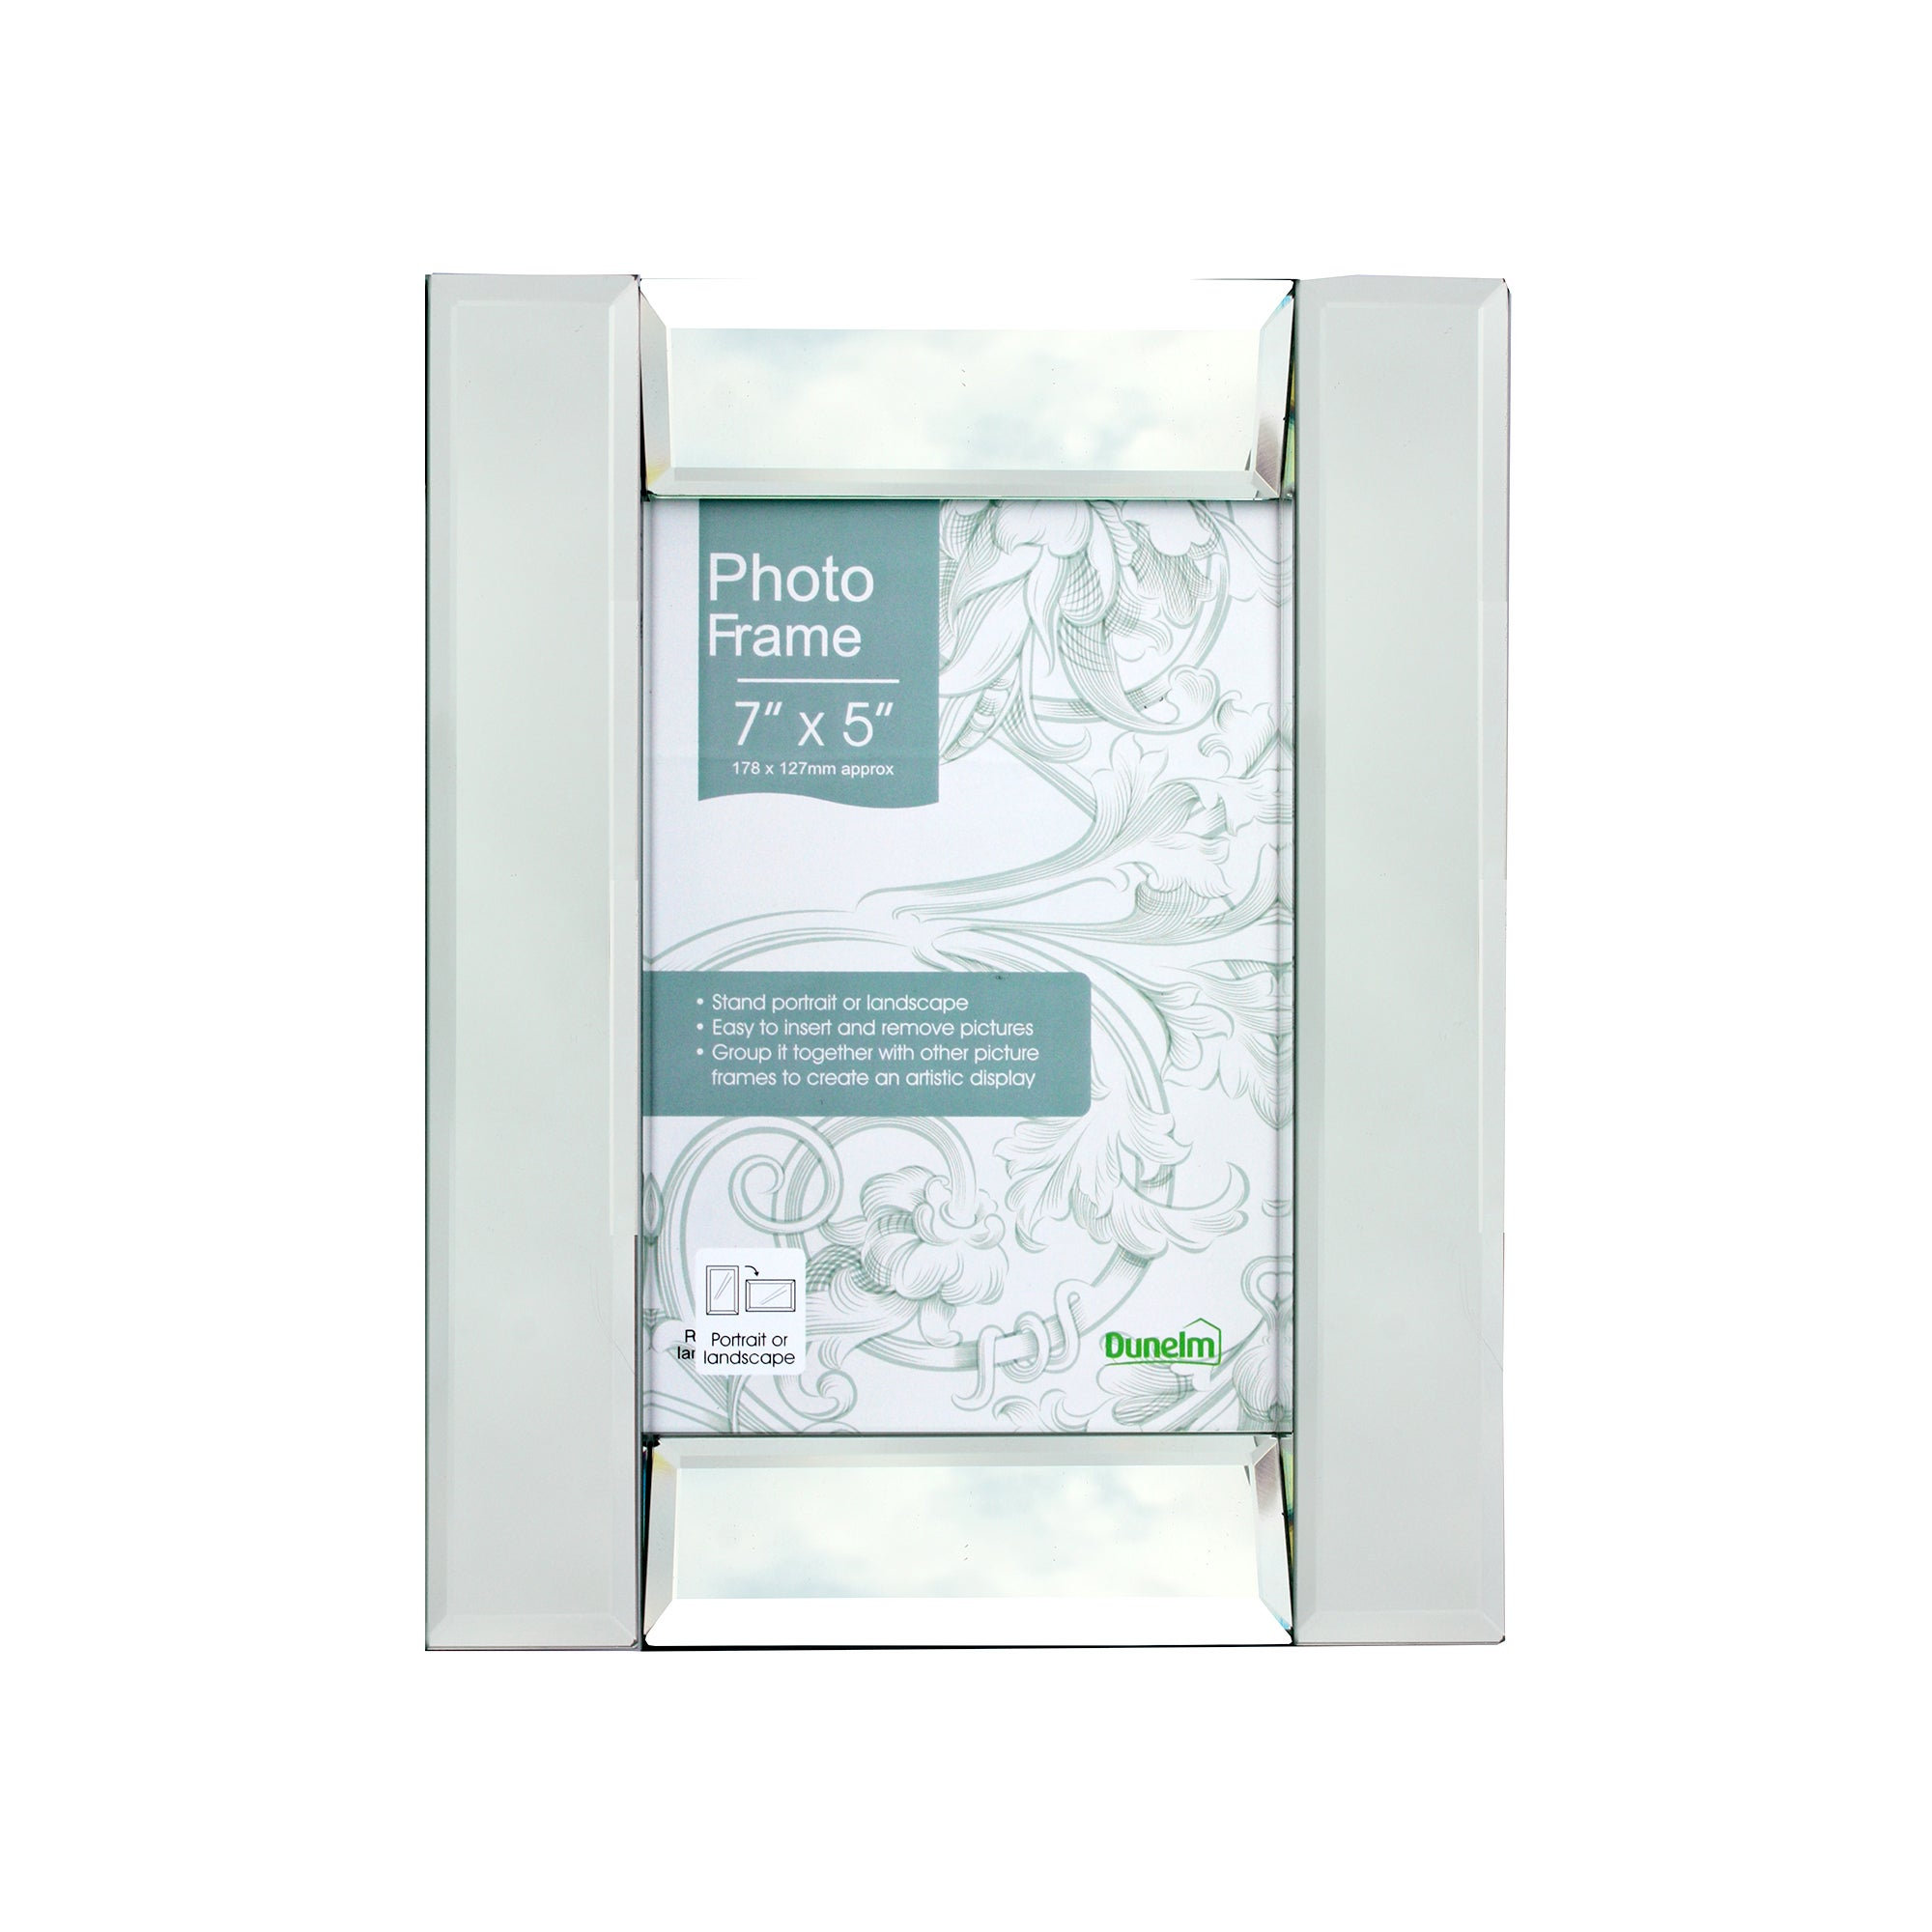 Silver Deep Angle Mirrored Photo Frame